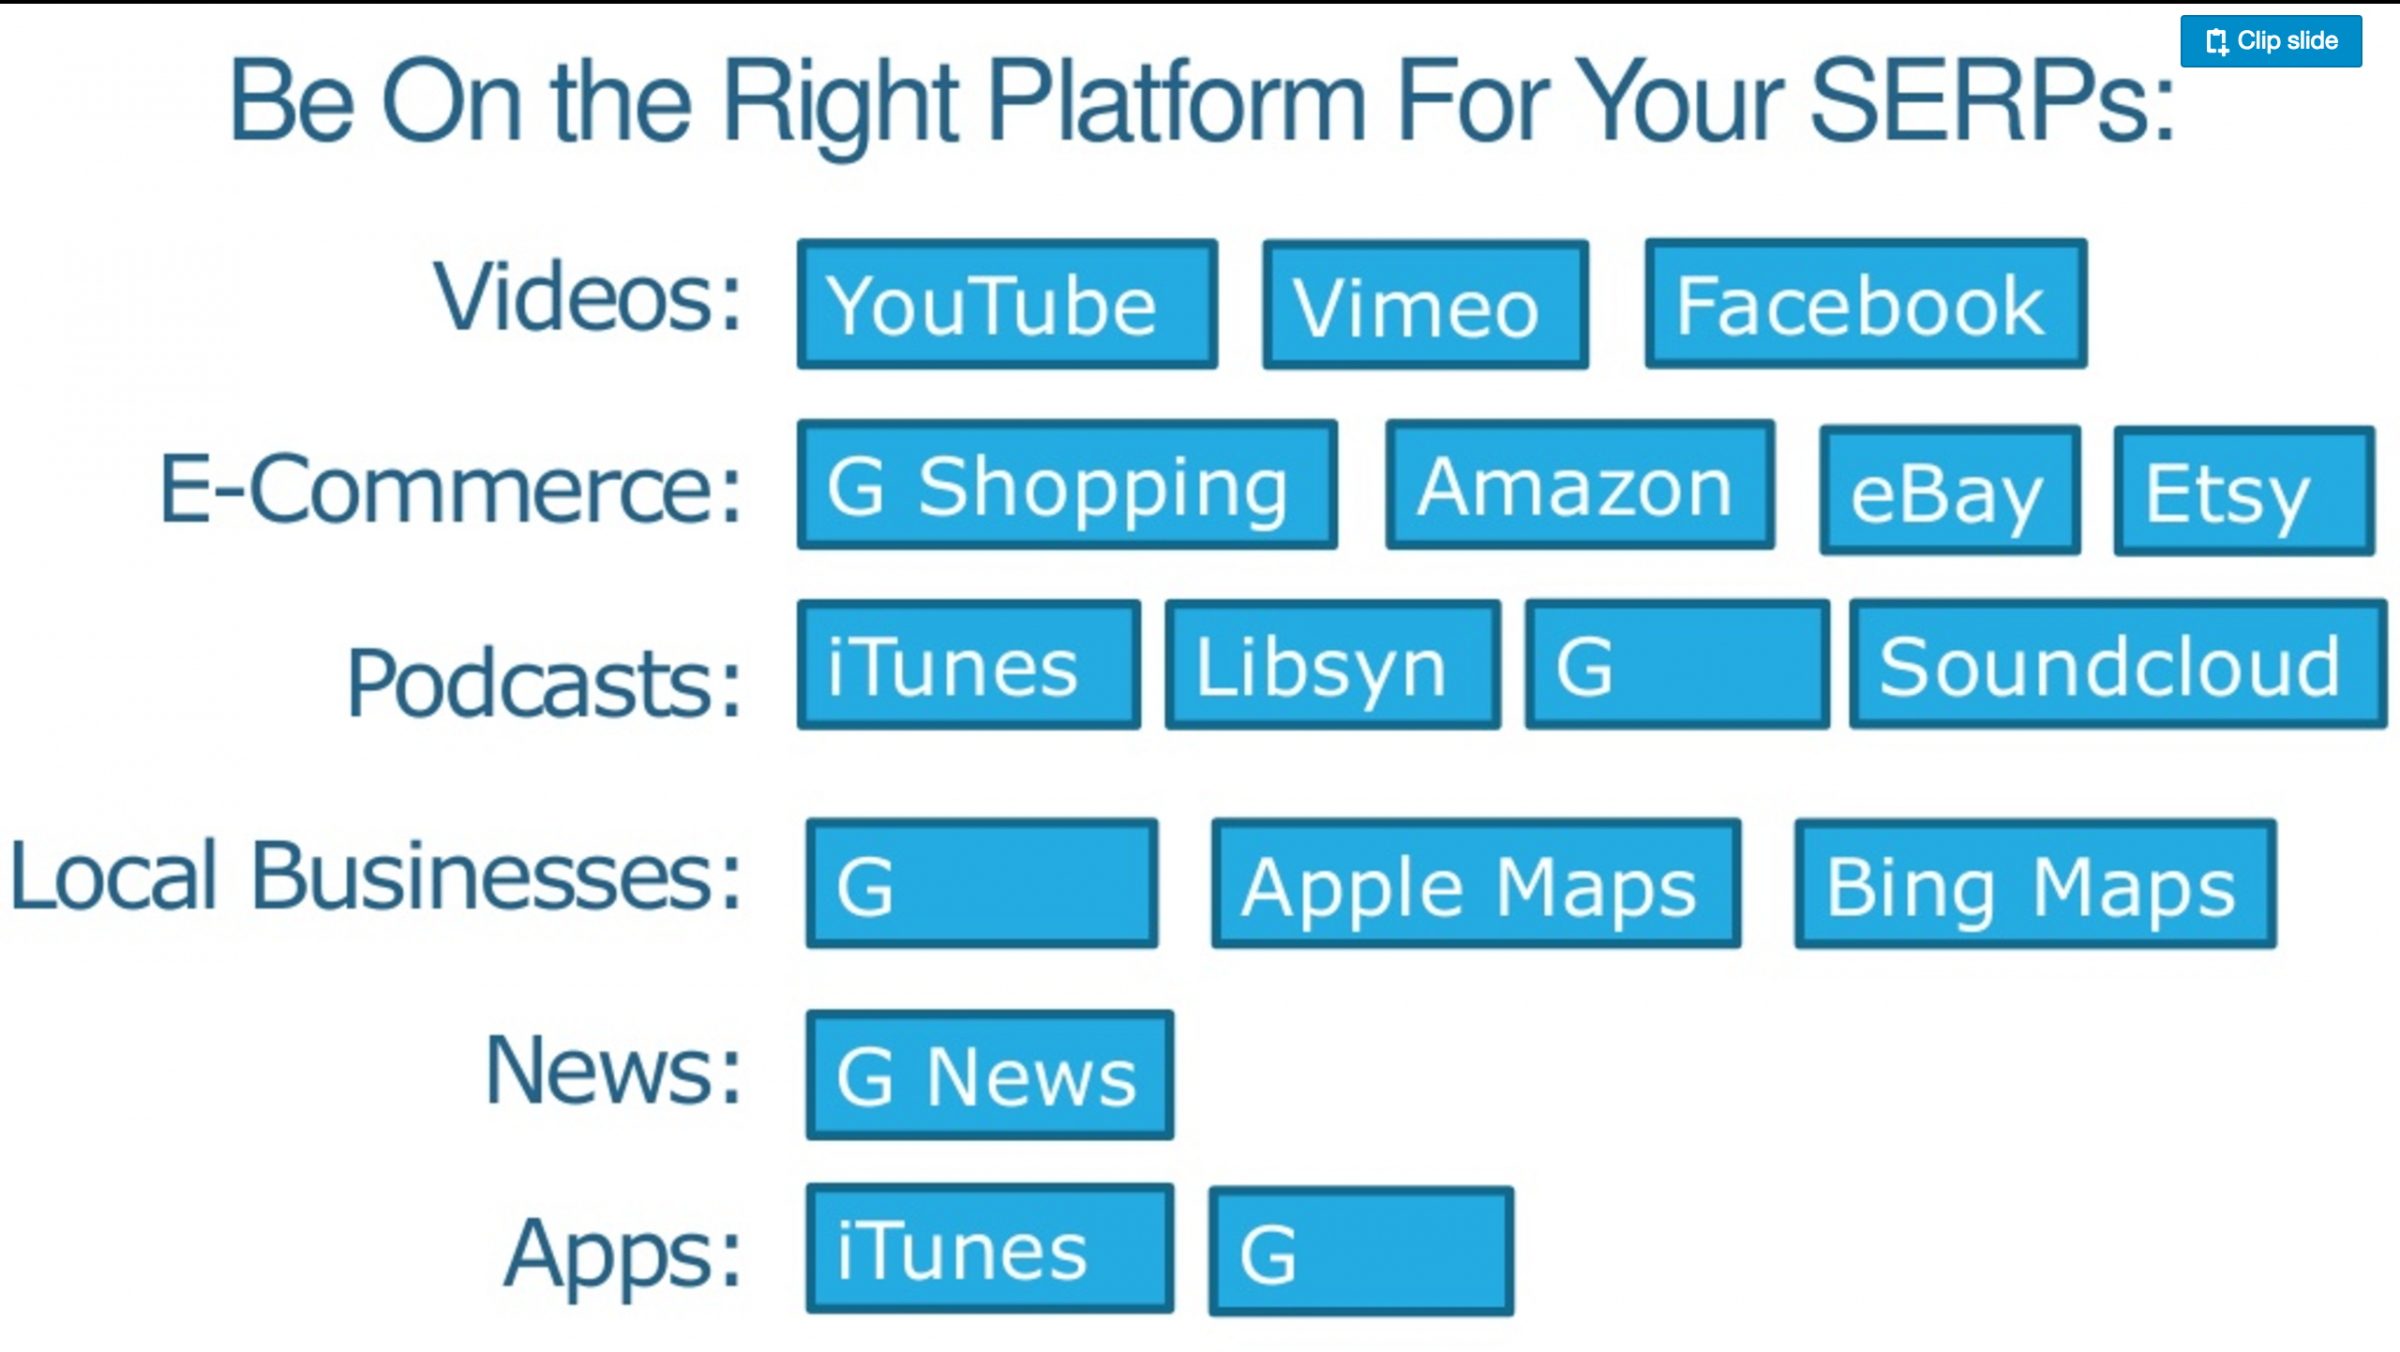 Be on the right platform to appear in a SERP type